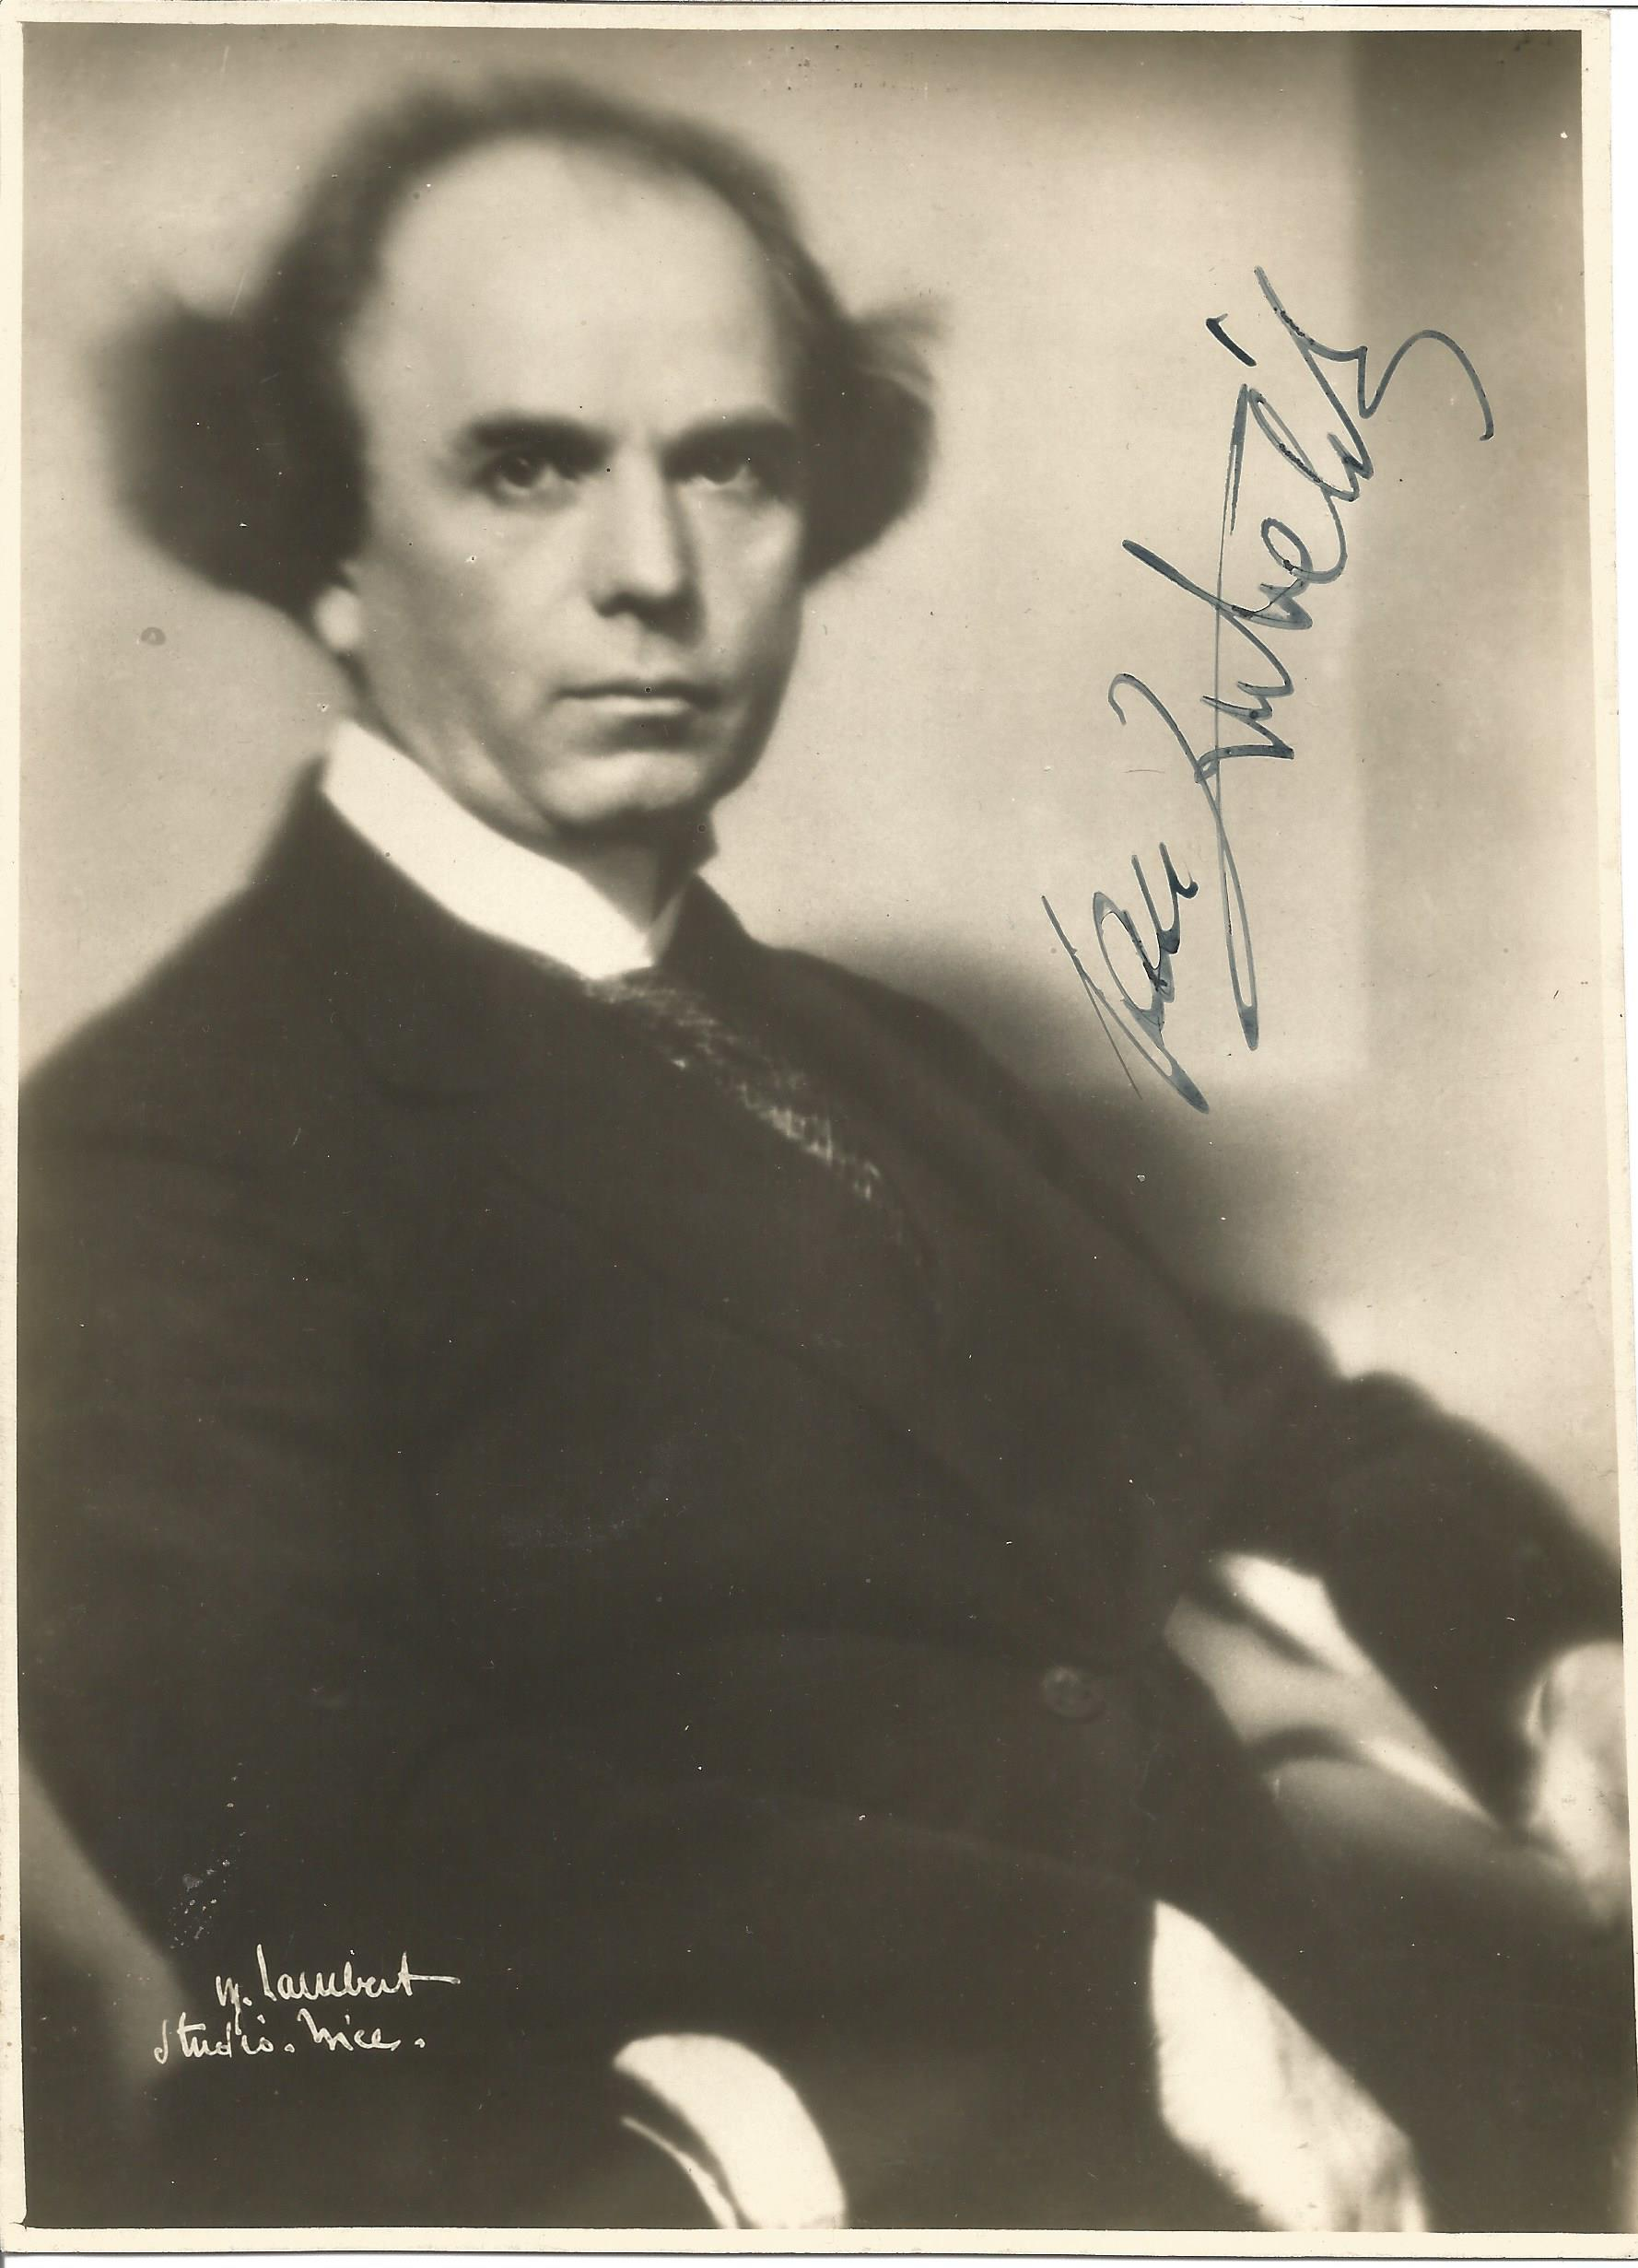 Violinist Jan Kubelik vintage black and white 8x6 photo with inscription to verso dated 1931. Jan